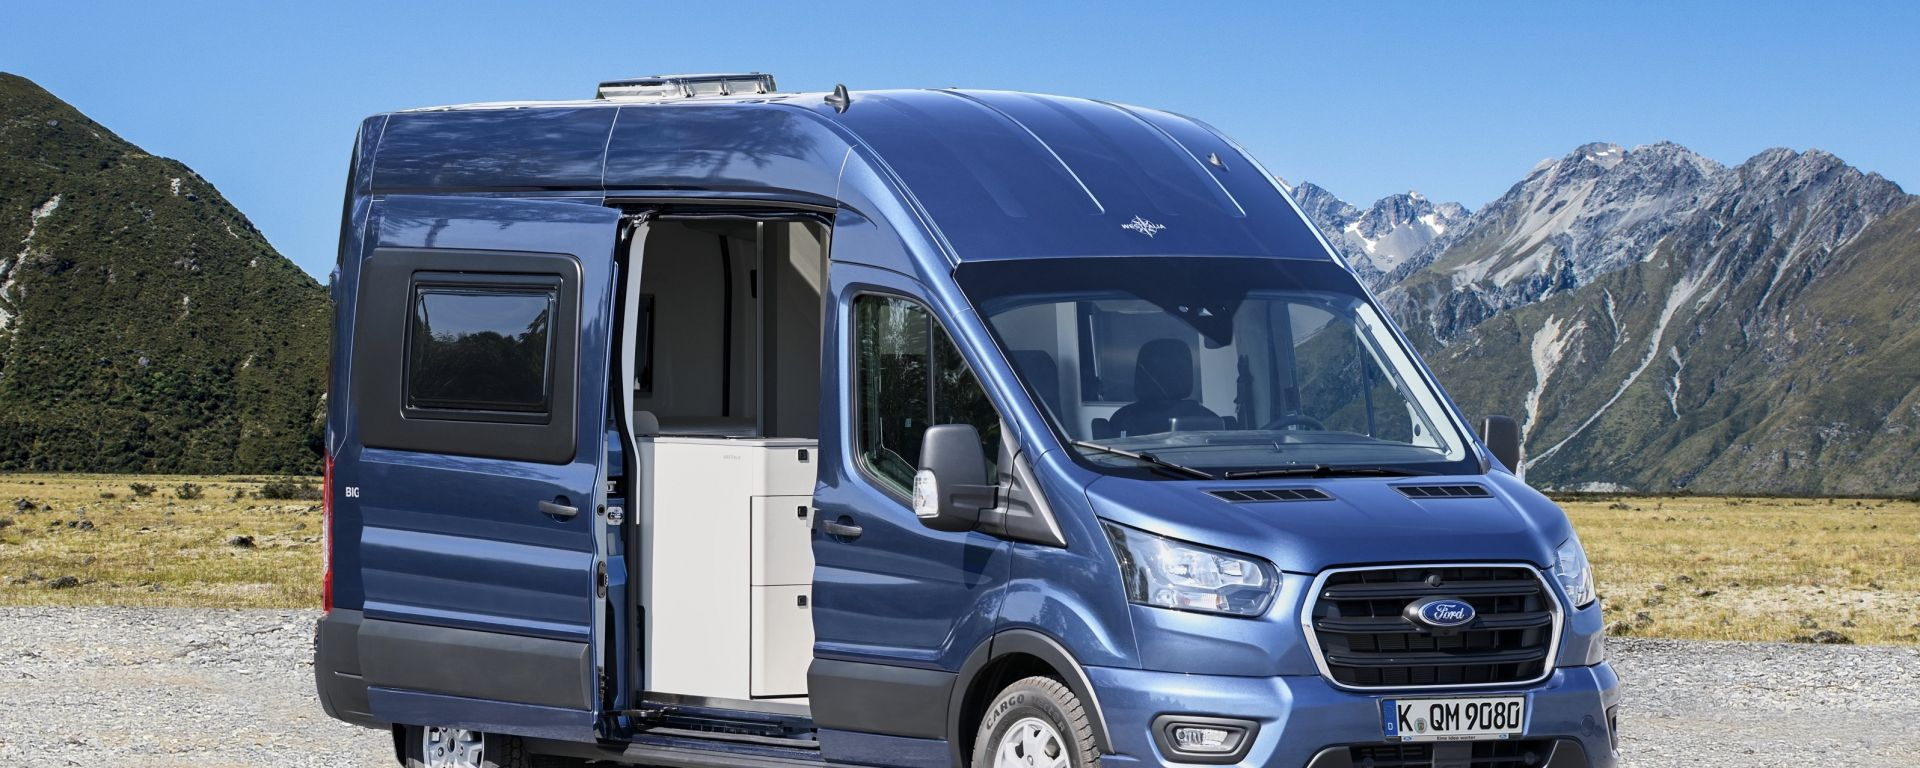 Ford Big Nugget 2020: concept di camper dell'ovale blu